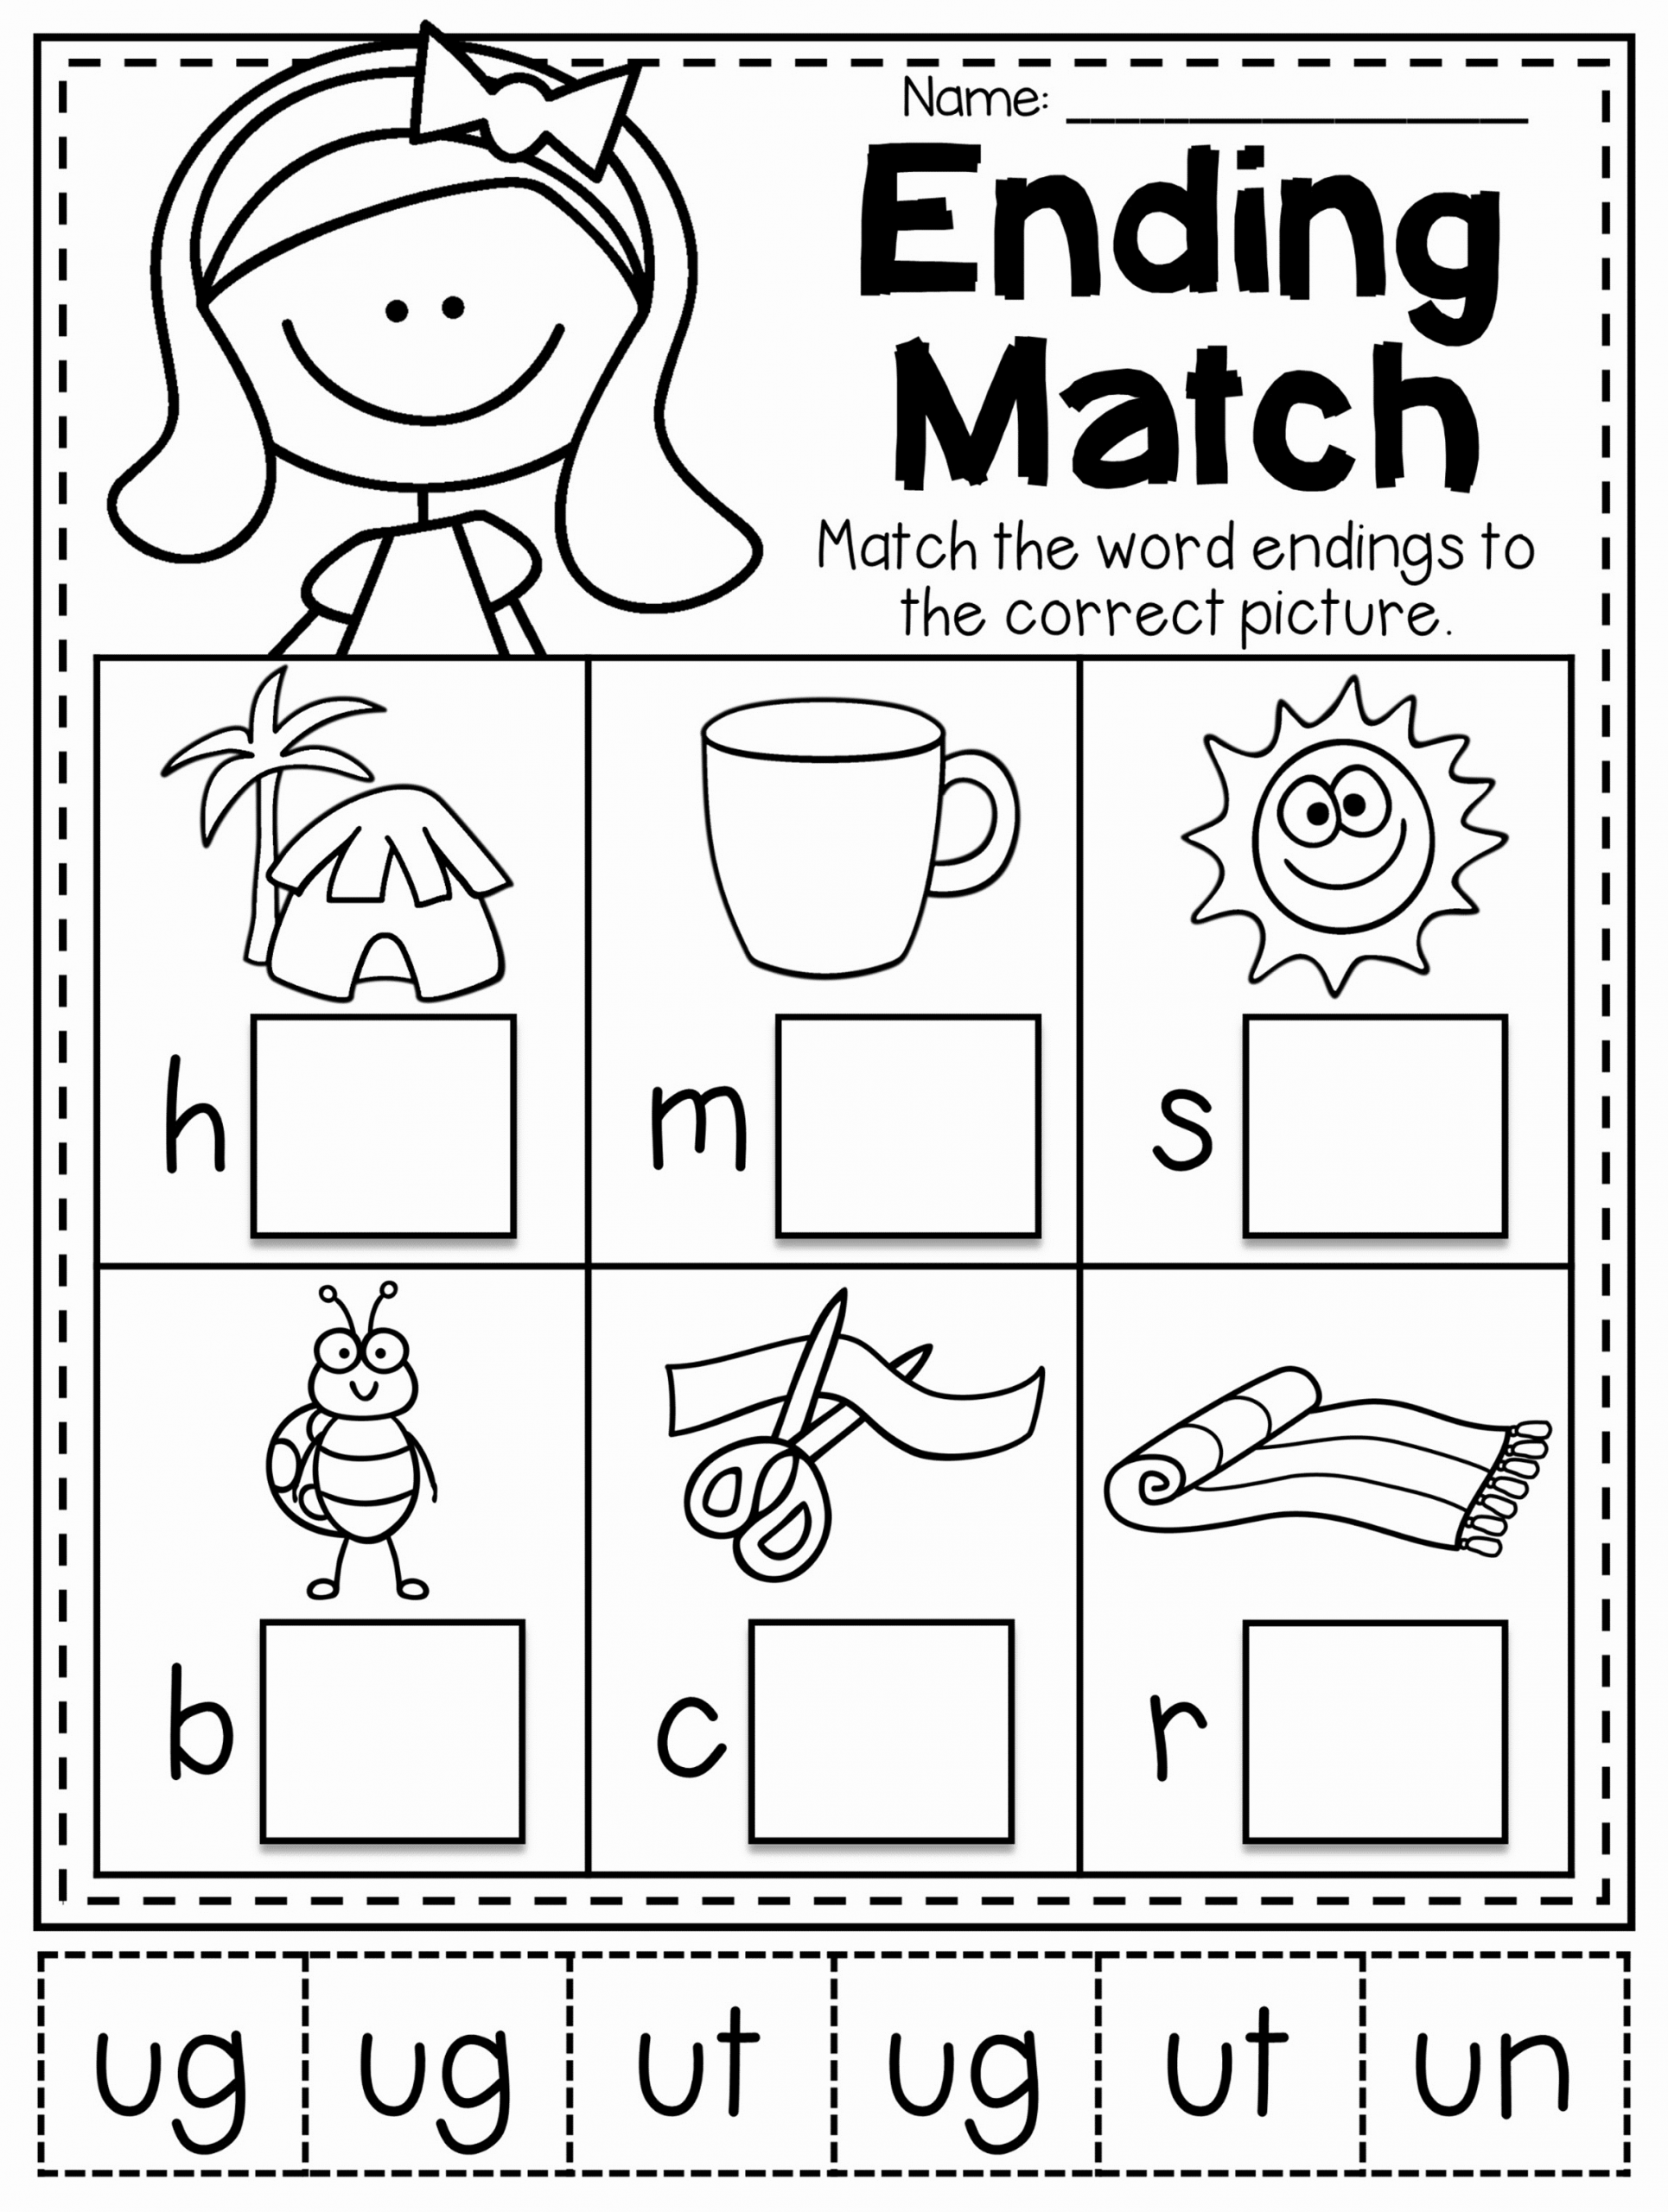 Cvc Worksheets for Kinder Lovely Ending Word Family Matching Worksheet for Short U Words